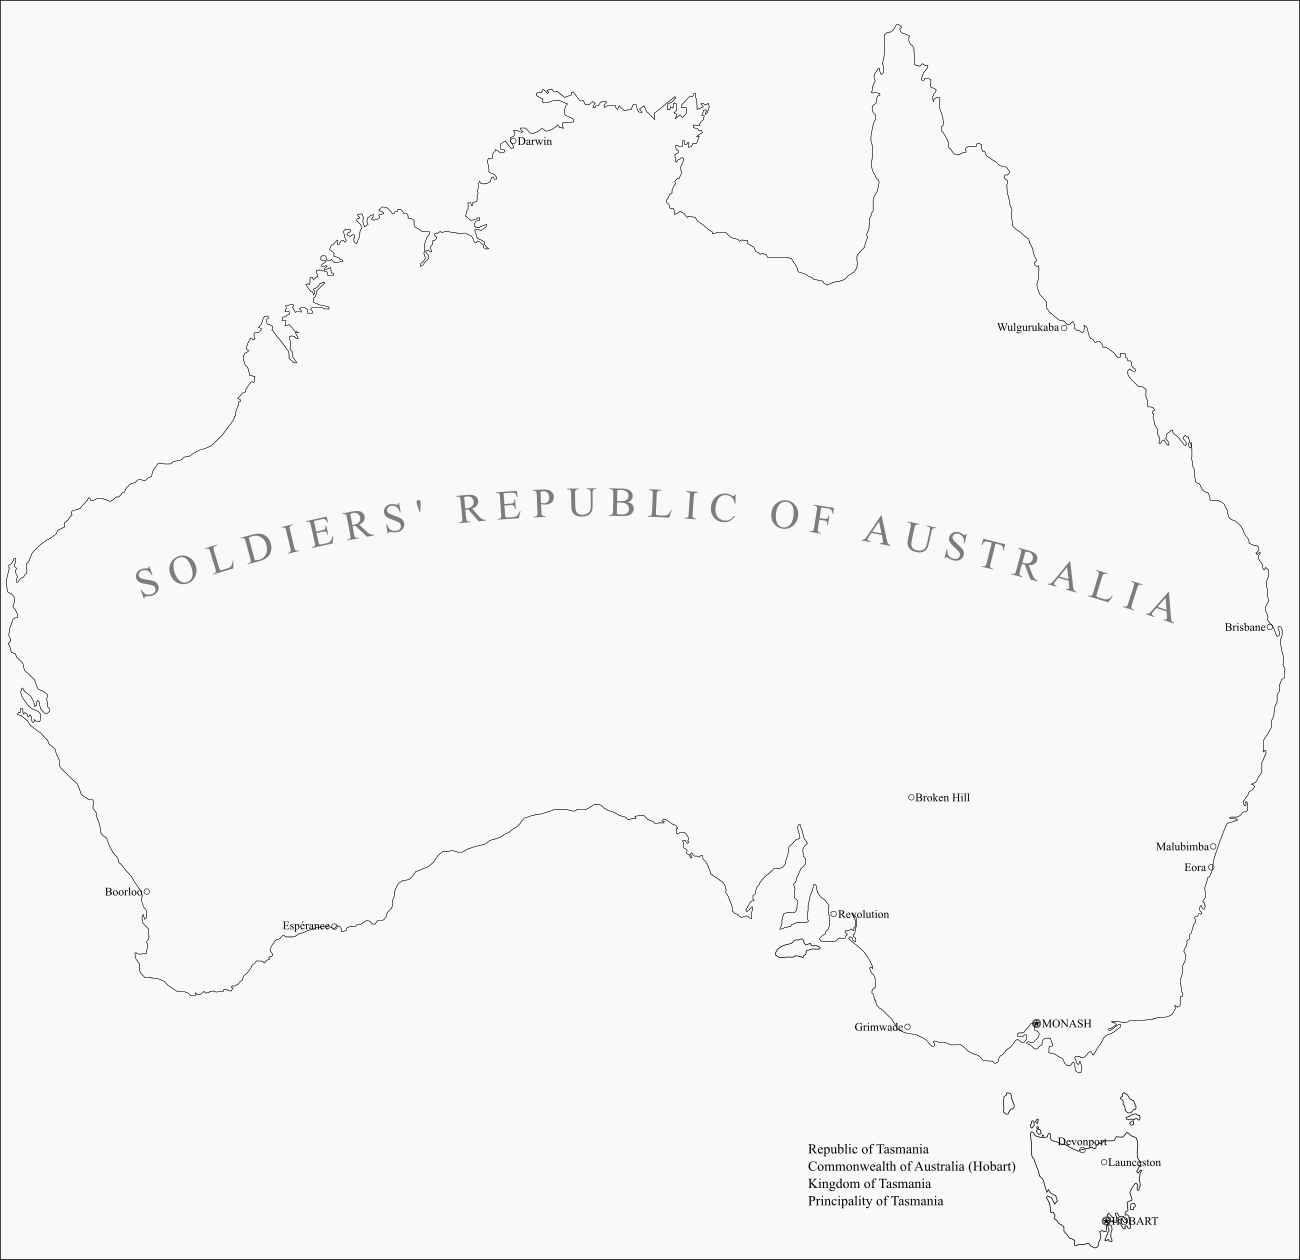 Soldiers Republic of Australia.png